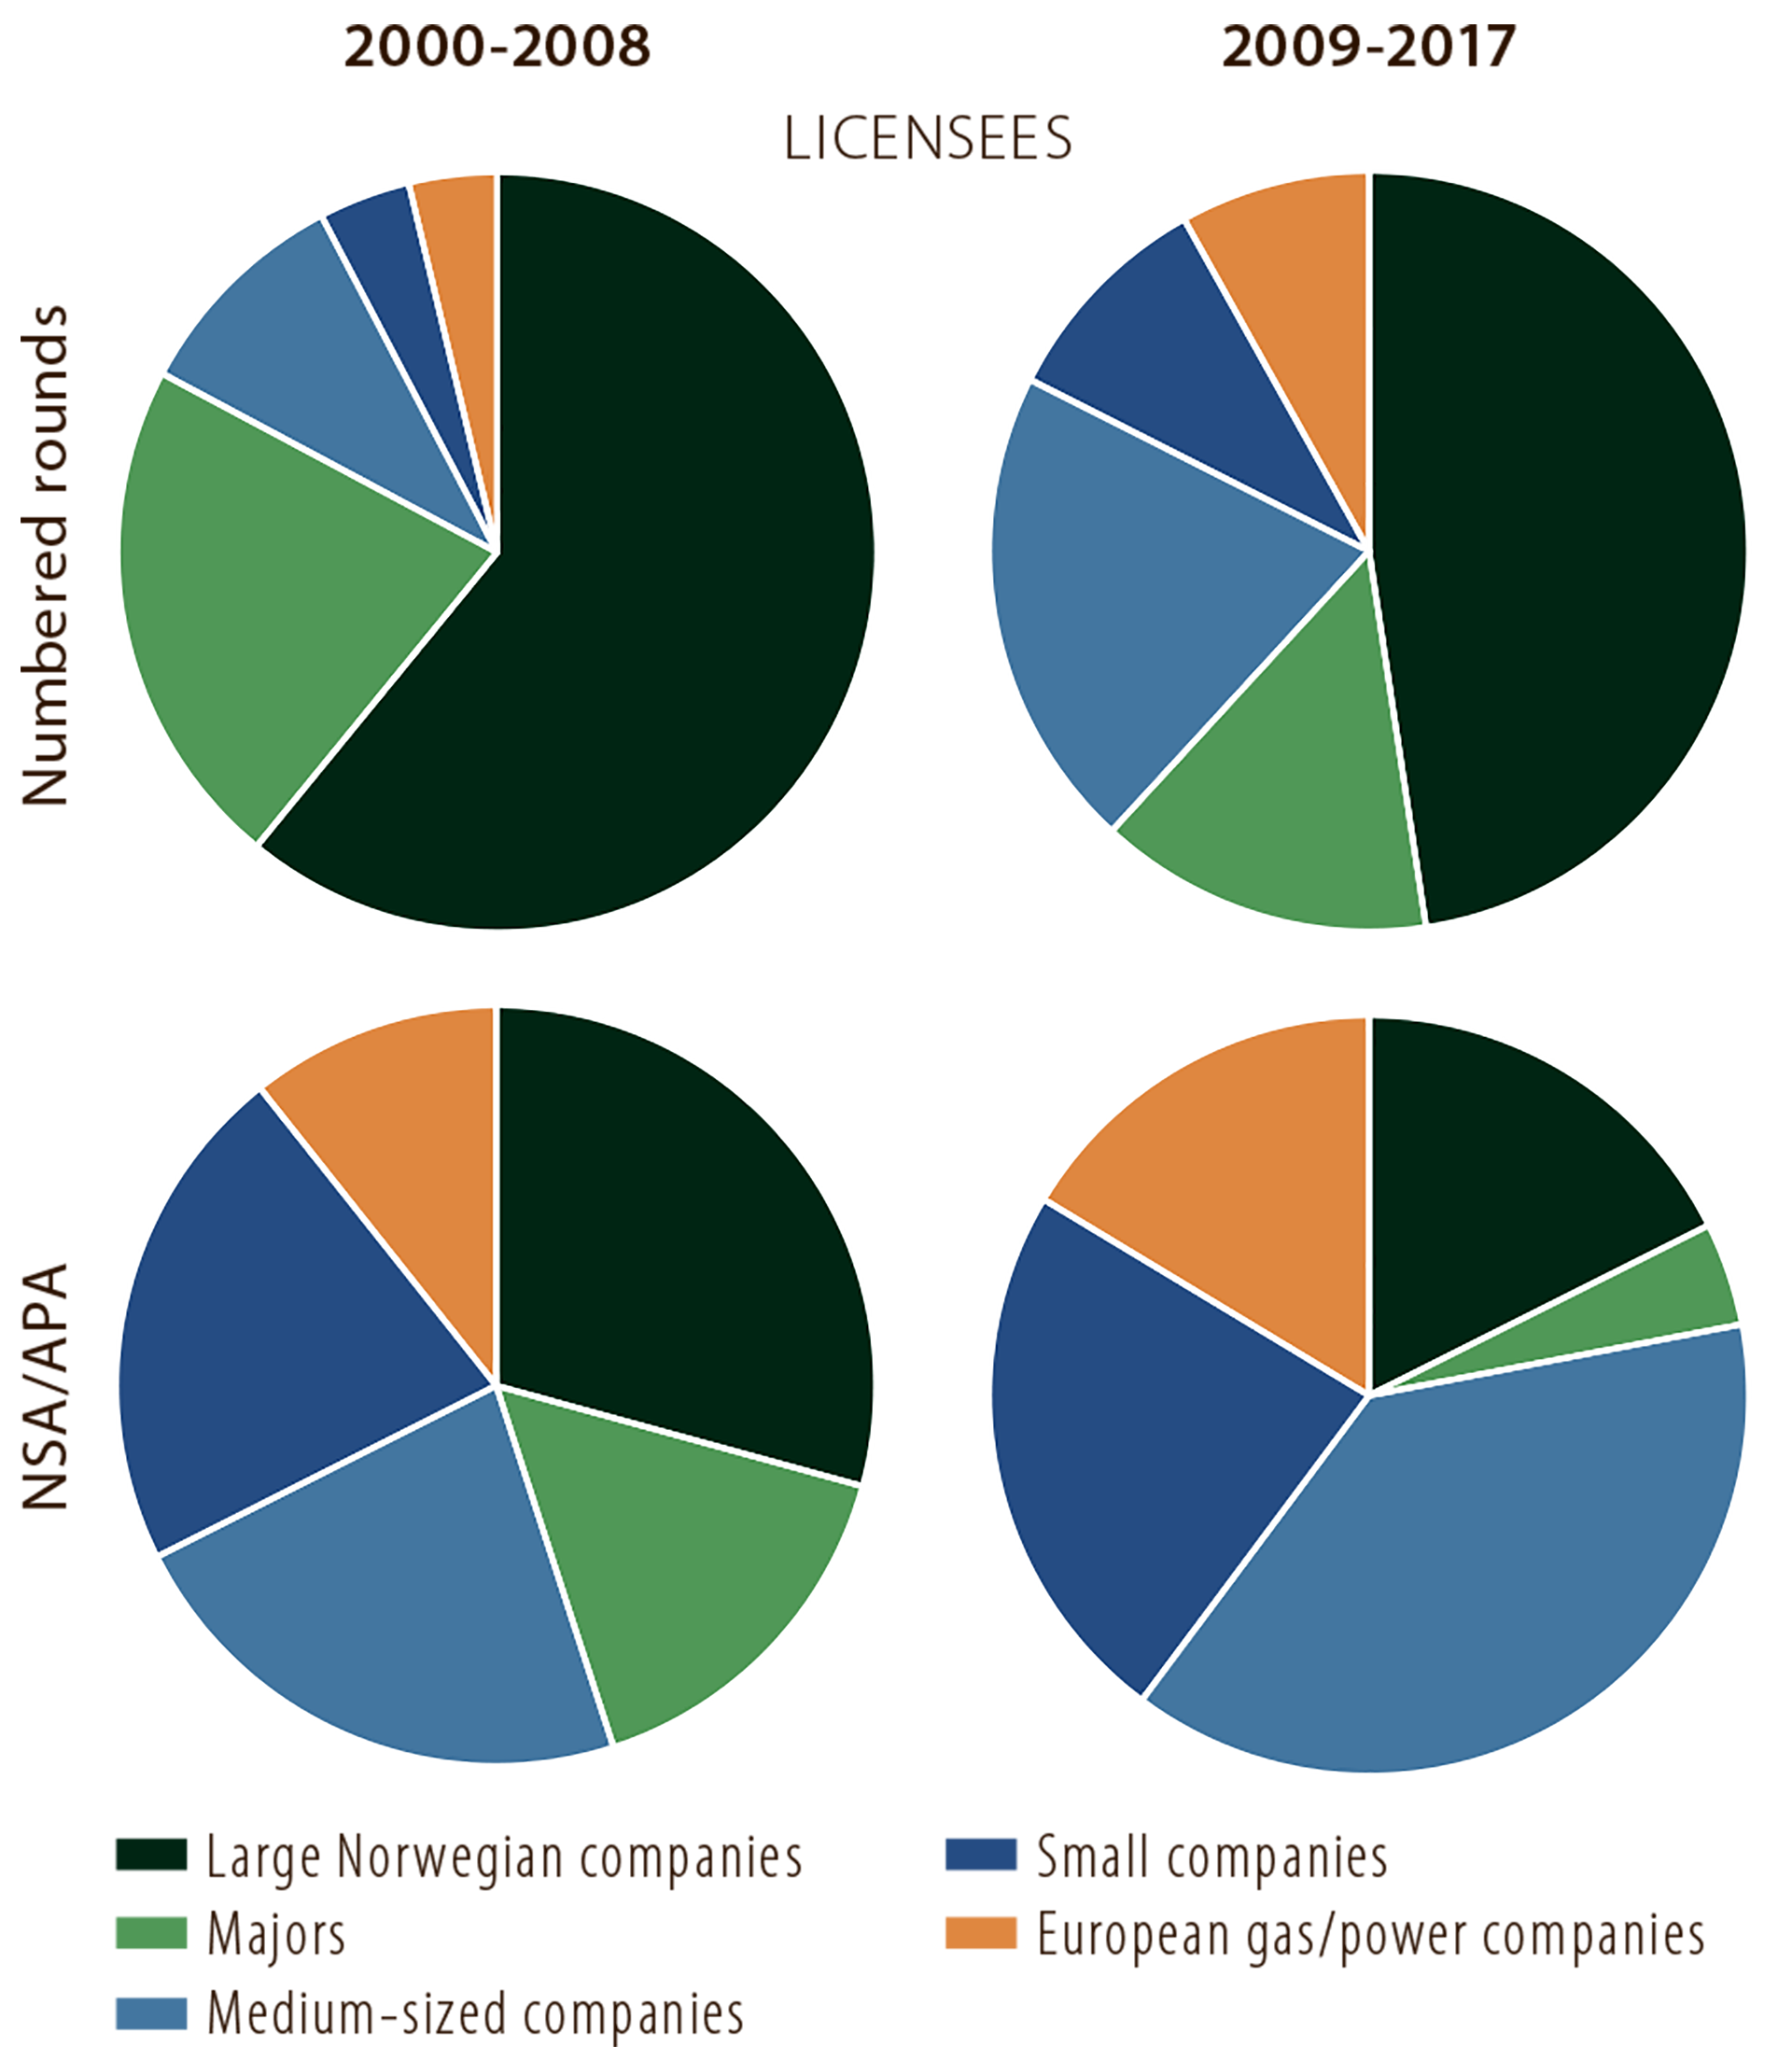 Figure 5.8 Proportion of wildcats drilled by company category (licensees) in licences awarded through numbered and APA rounds respectively in 2000-08 and 2009-17.